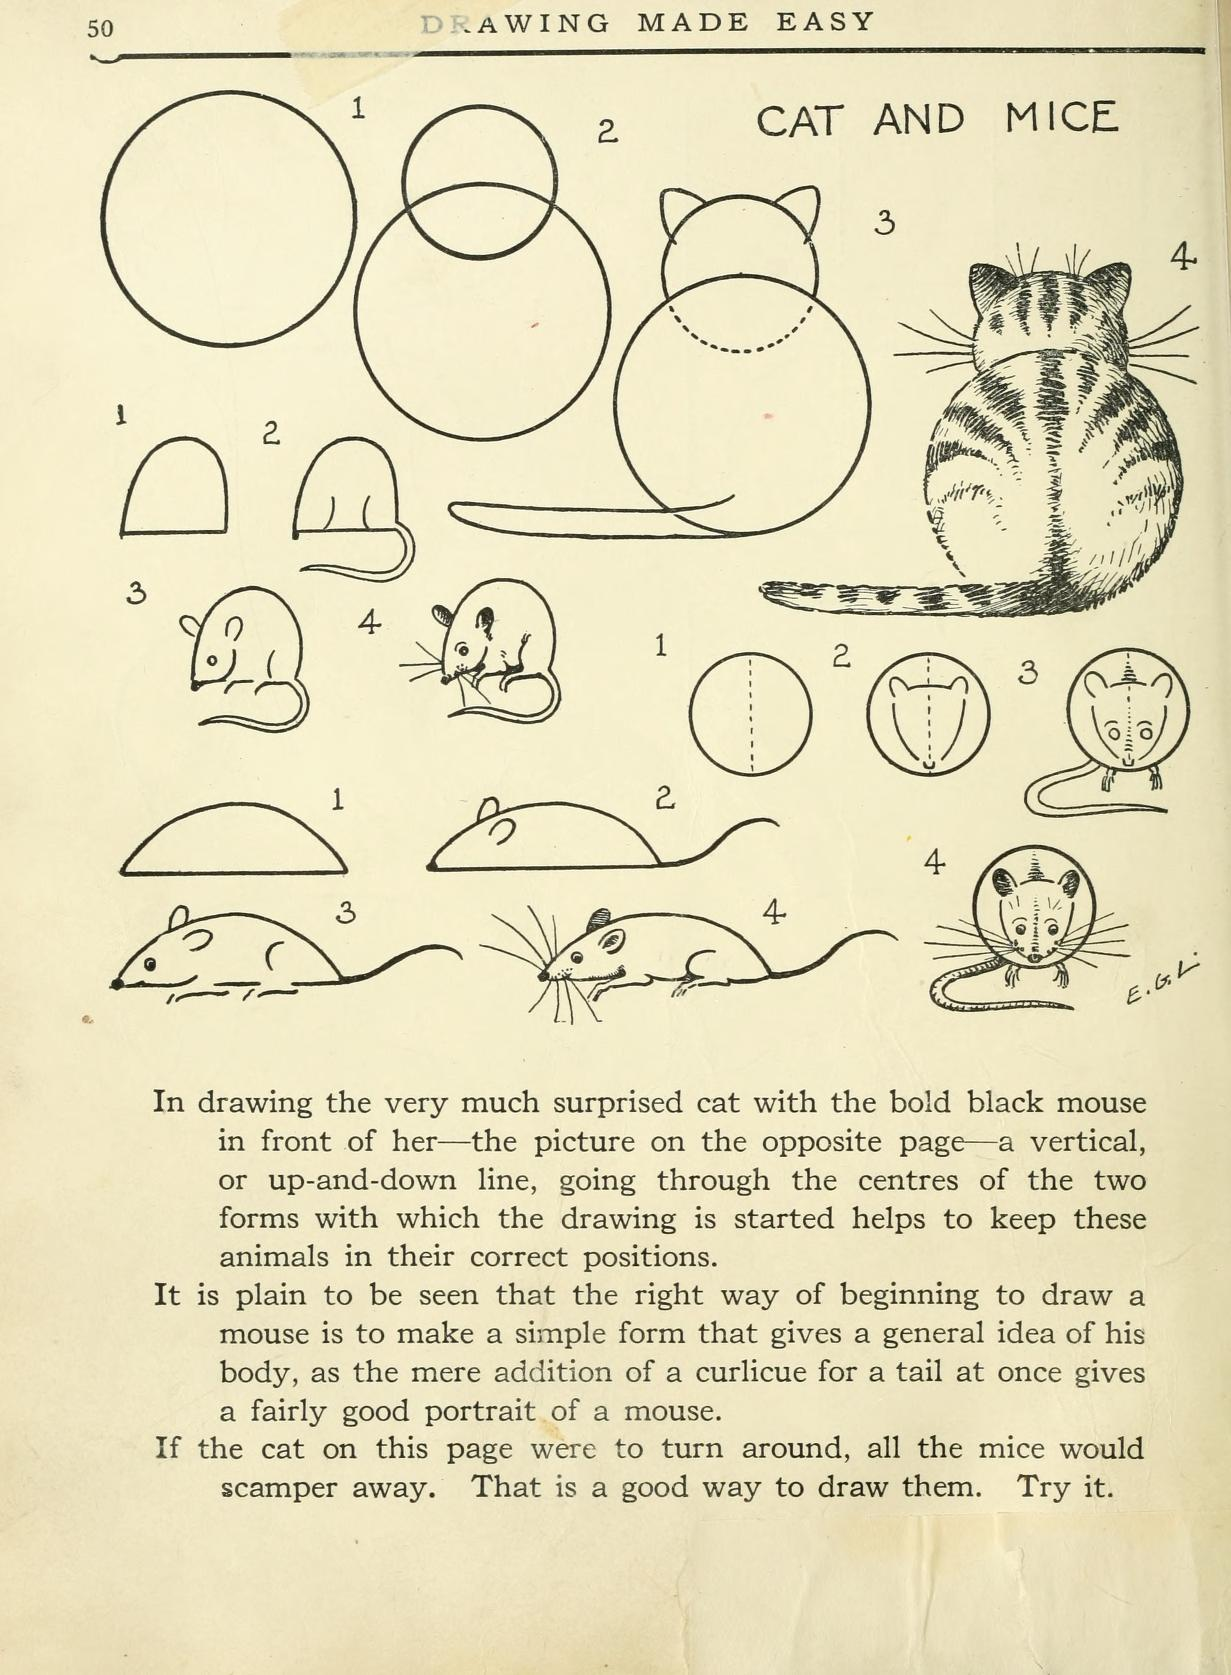 learn how to draw a cat and mice